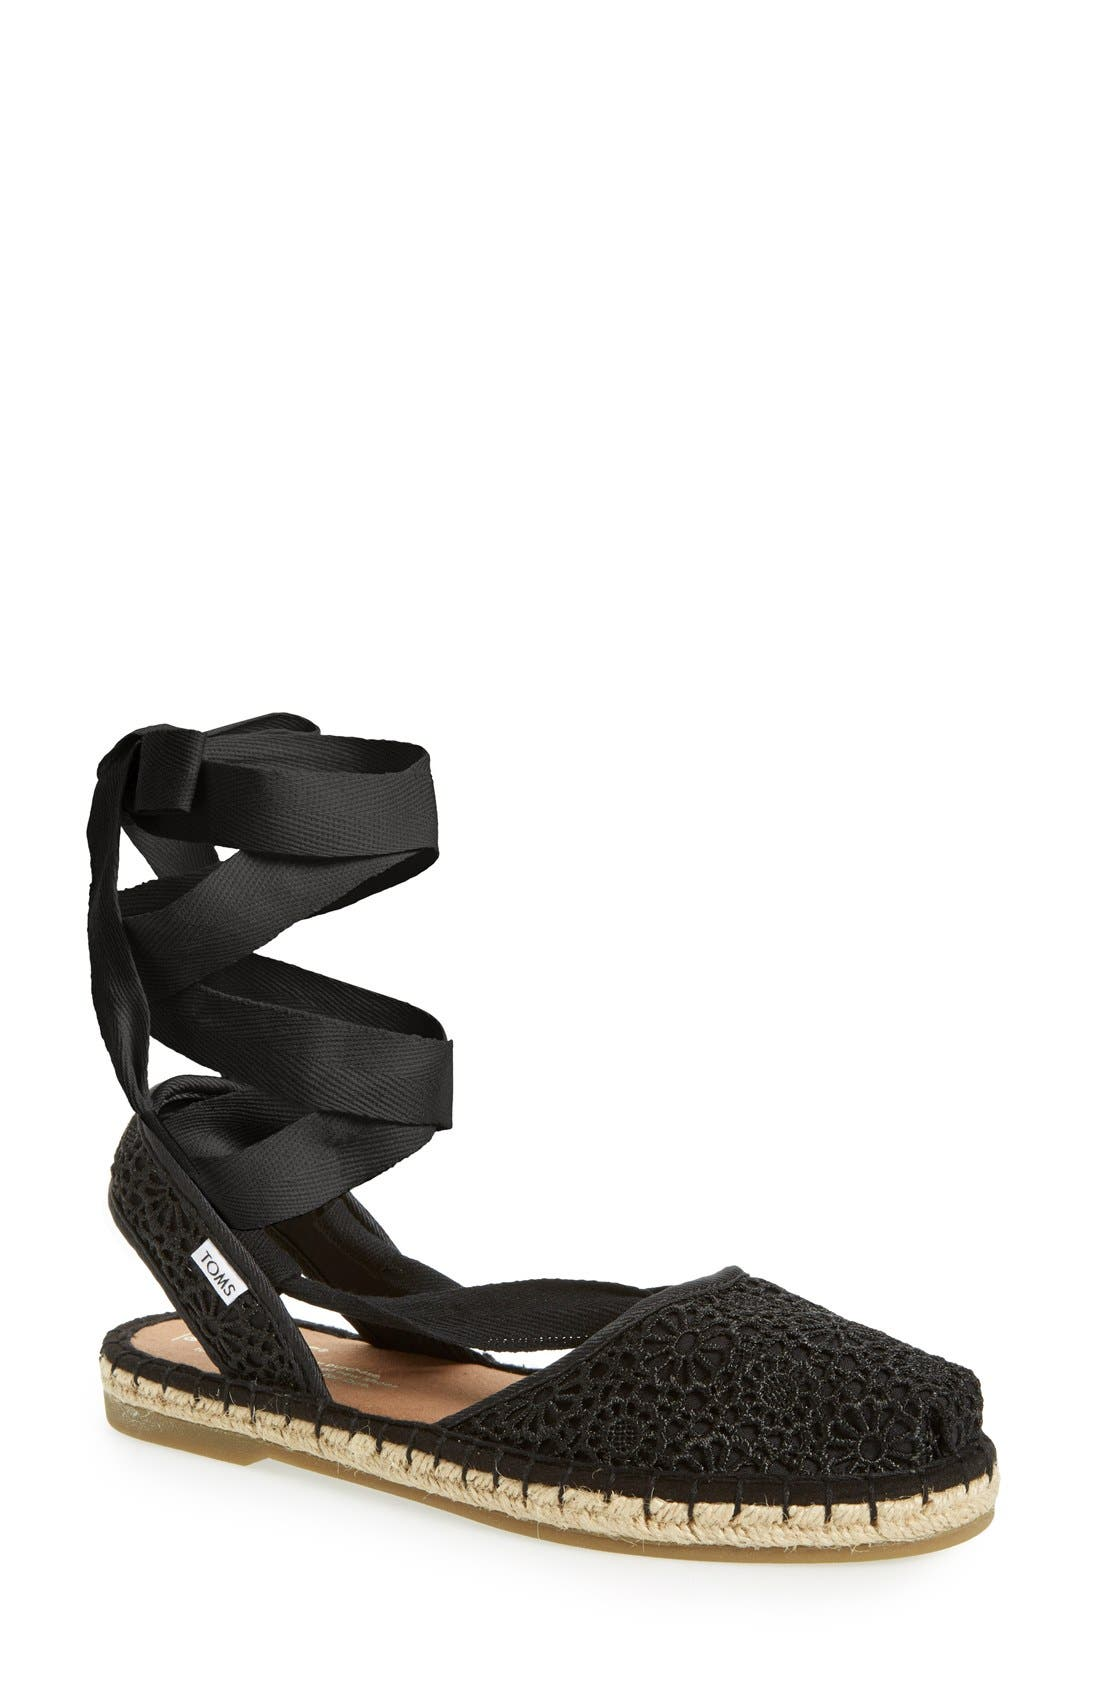 'Bella' Espadrille Sandal,                             Main thumbnail 1, color,                             Black Crochet